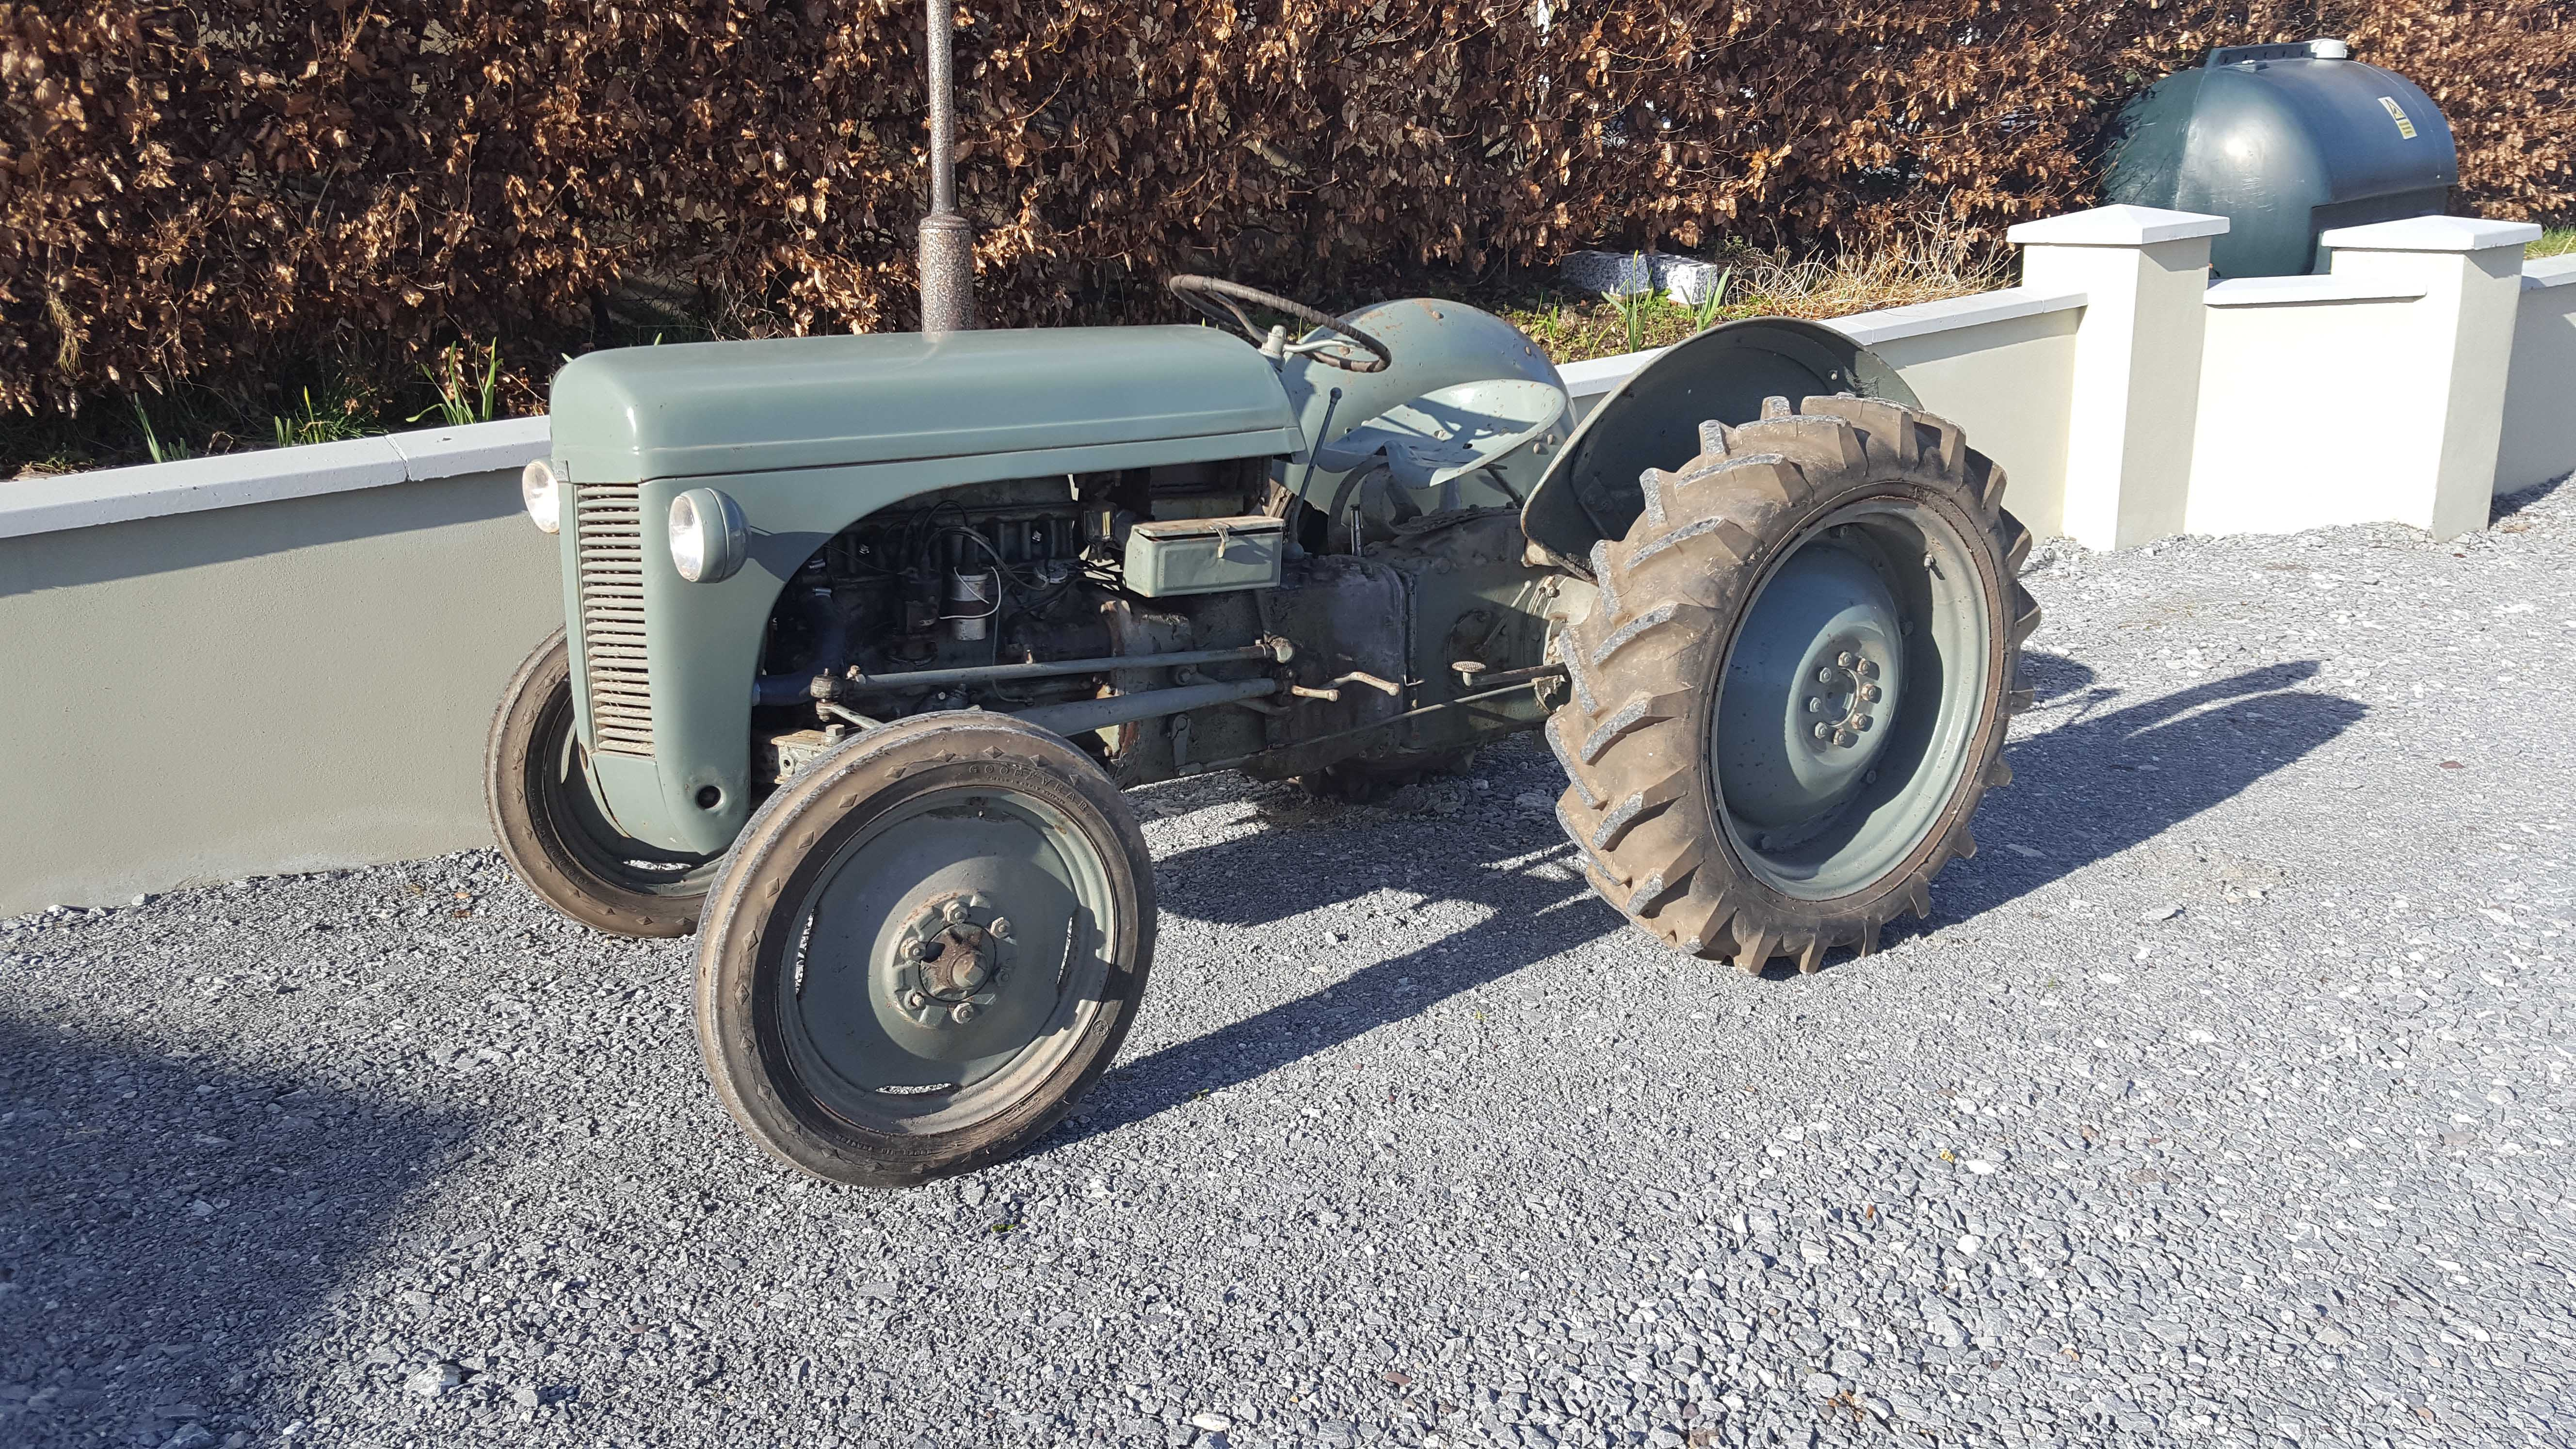 Cars Northern Ireland Used Cars Ni Second Hand Cars For: Done Deal Ireland Vintage Tractors